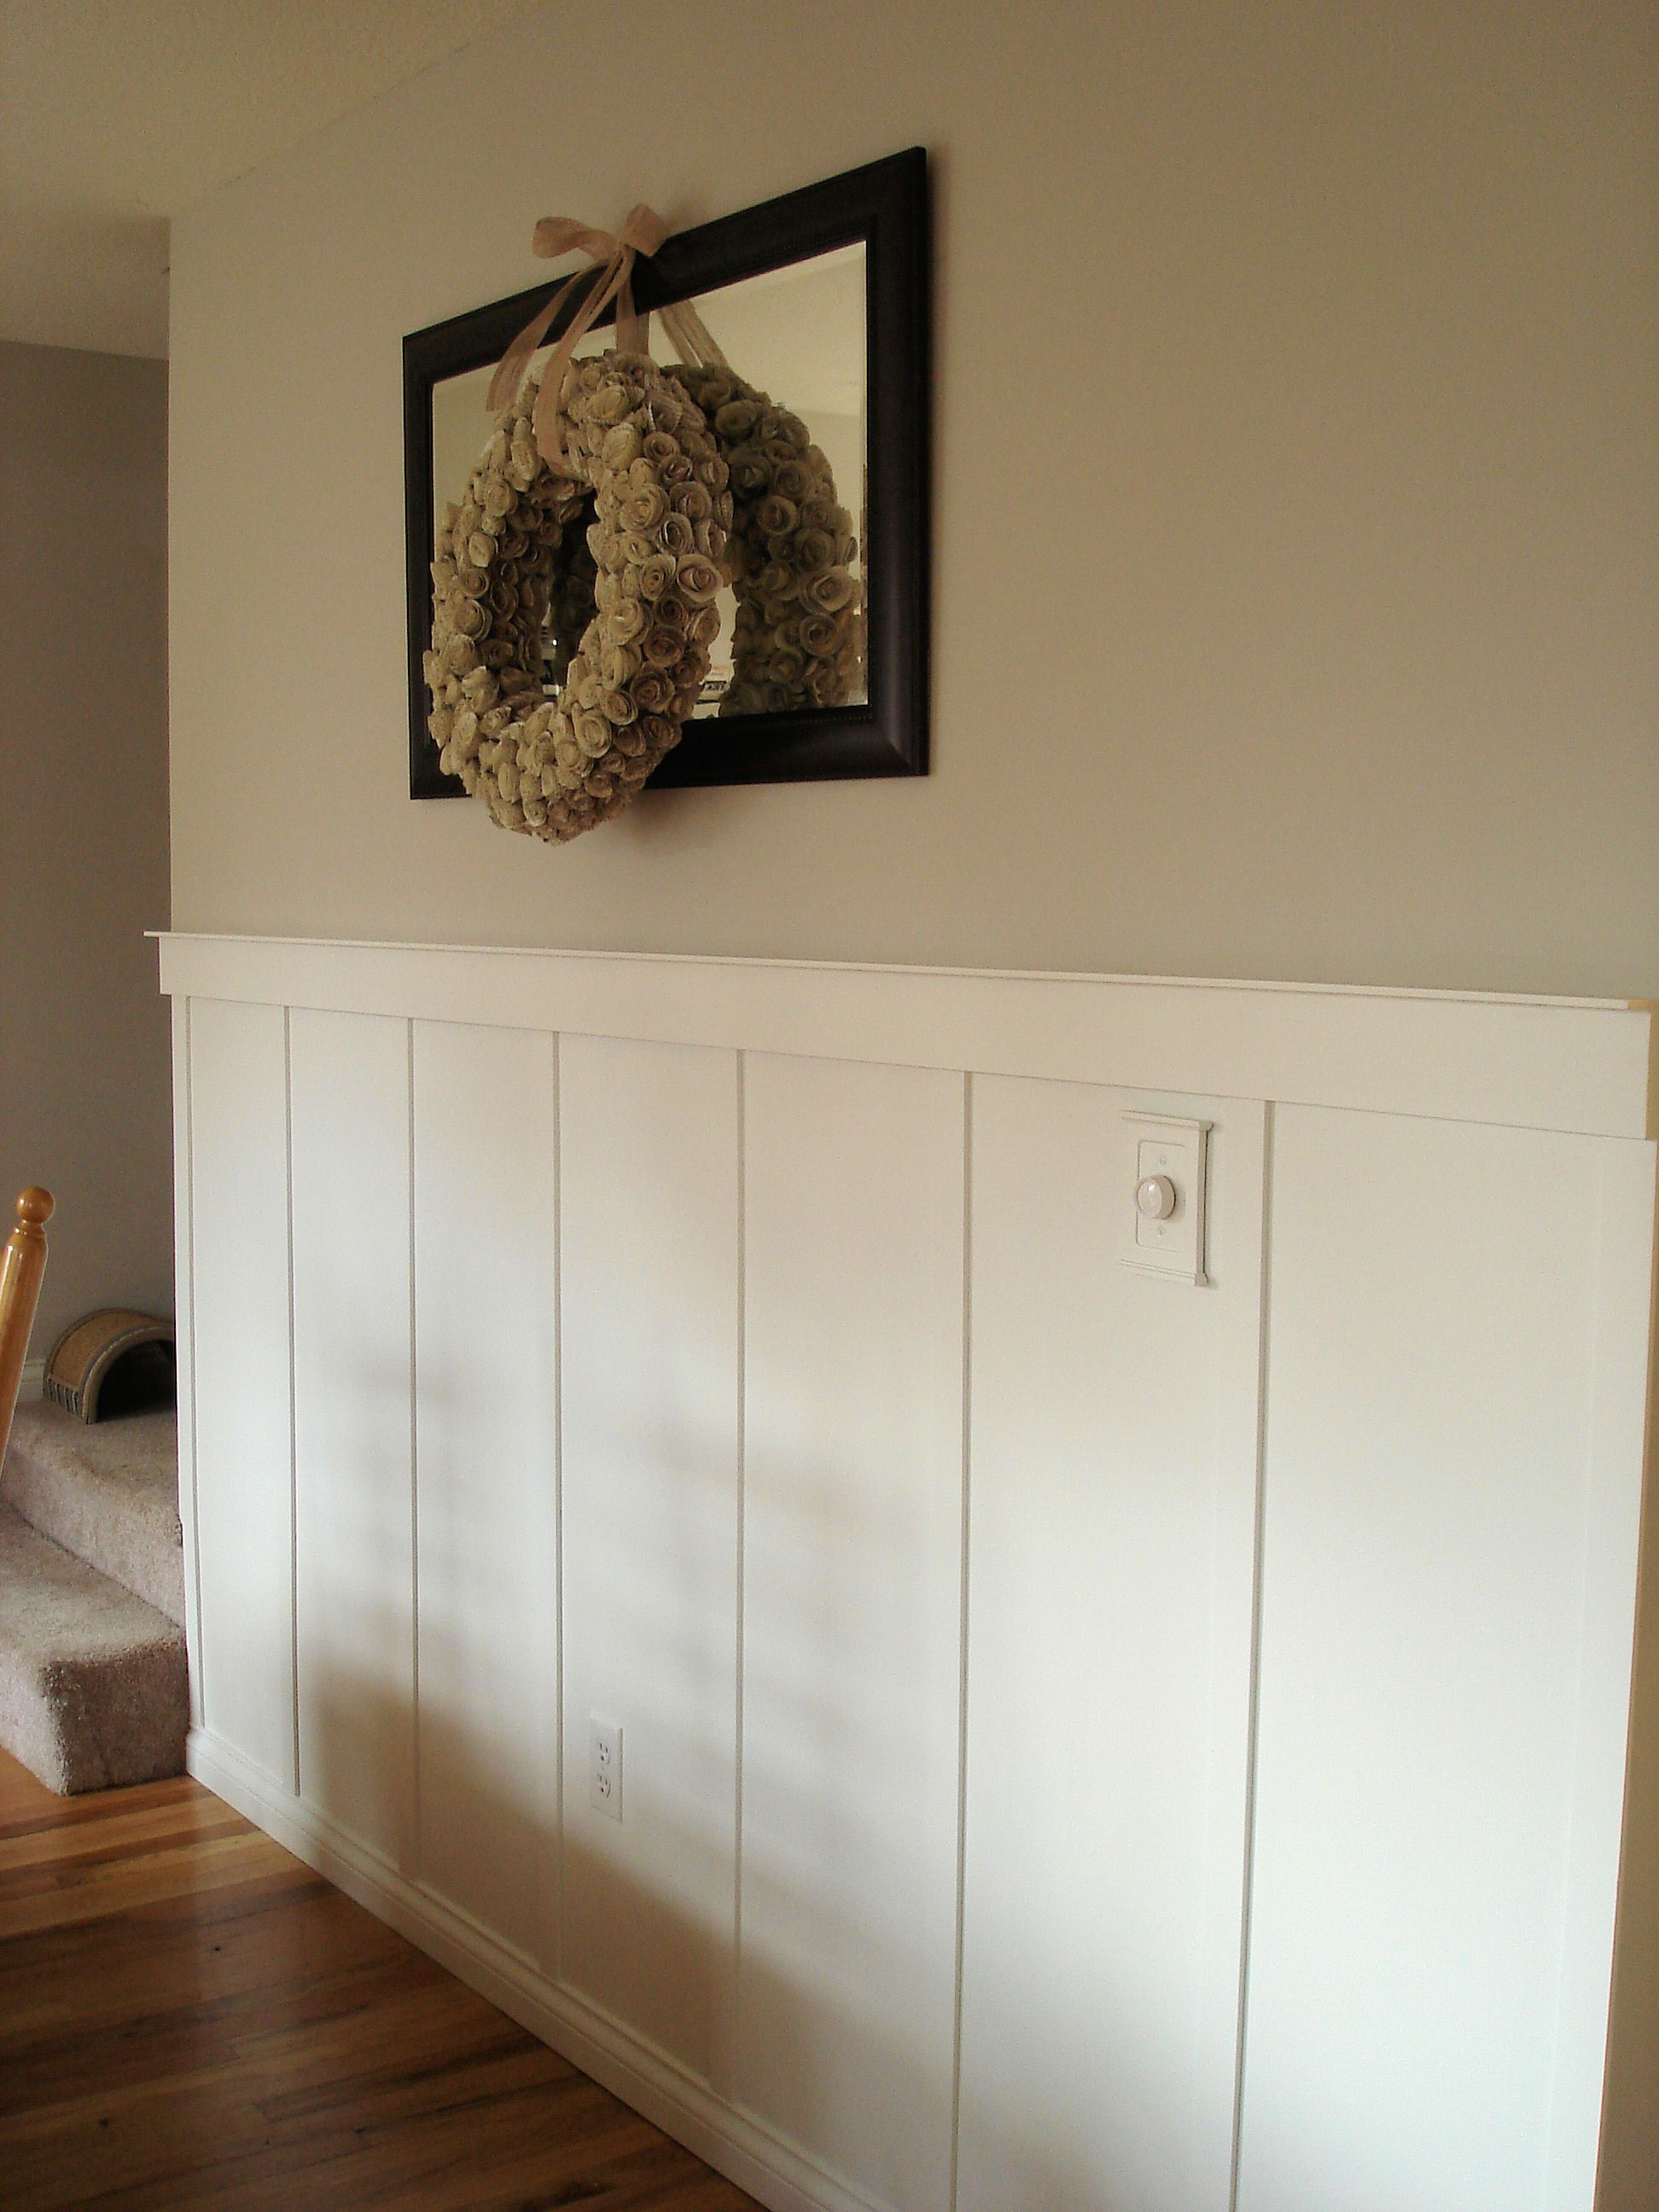 Di diy wainscoting dining room - Board And Batten Wainscoting For Stairwells Add Accent Colour Above Keep B Cream Or